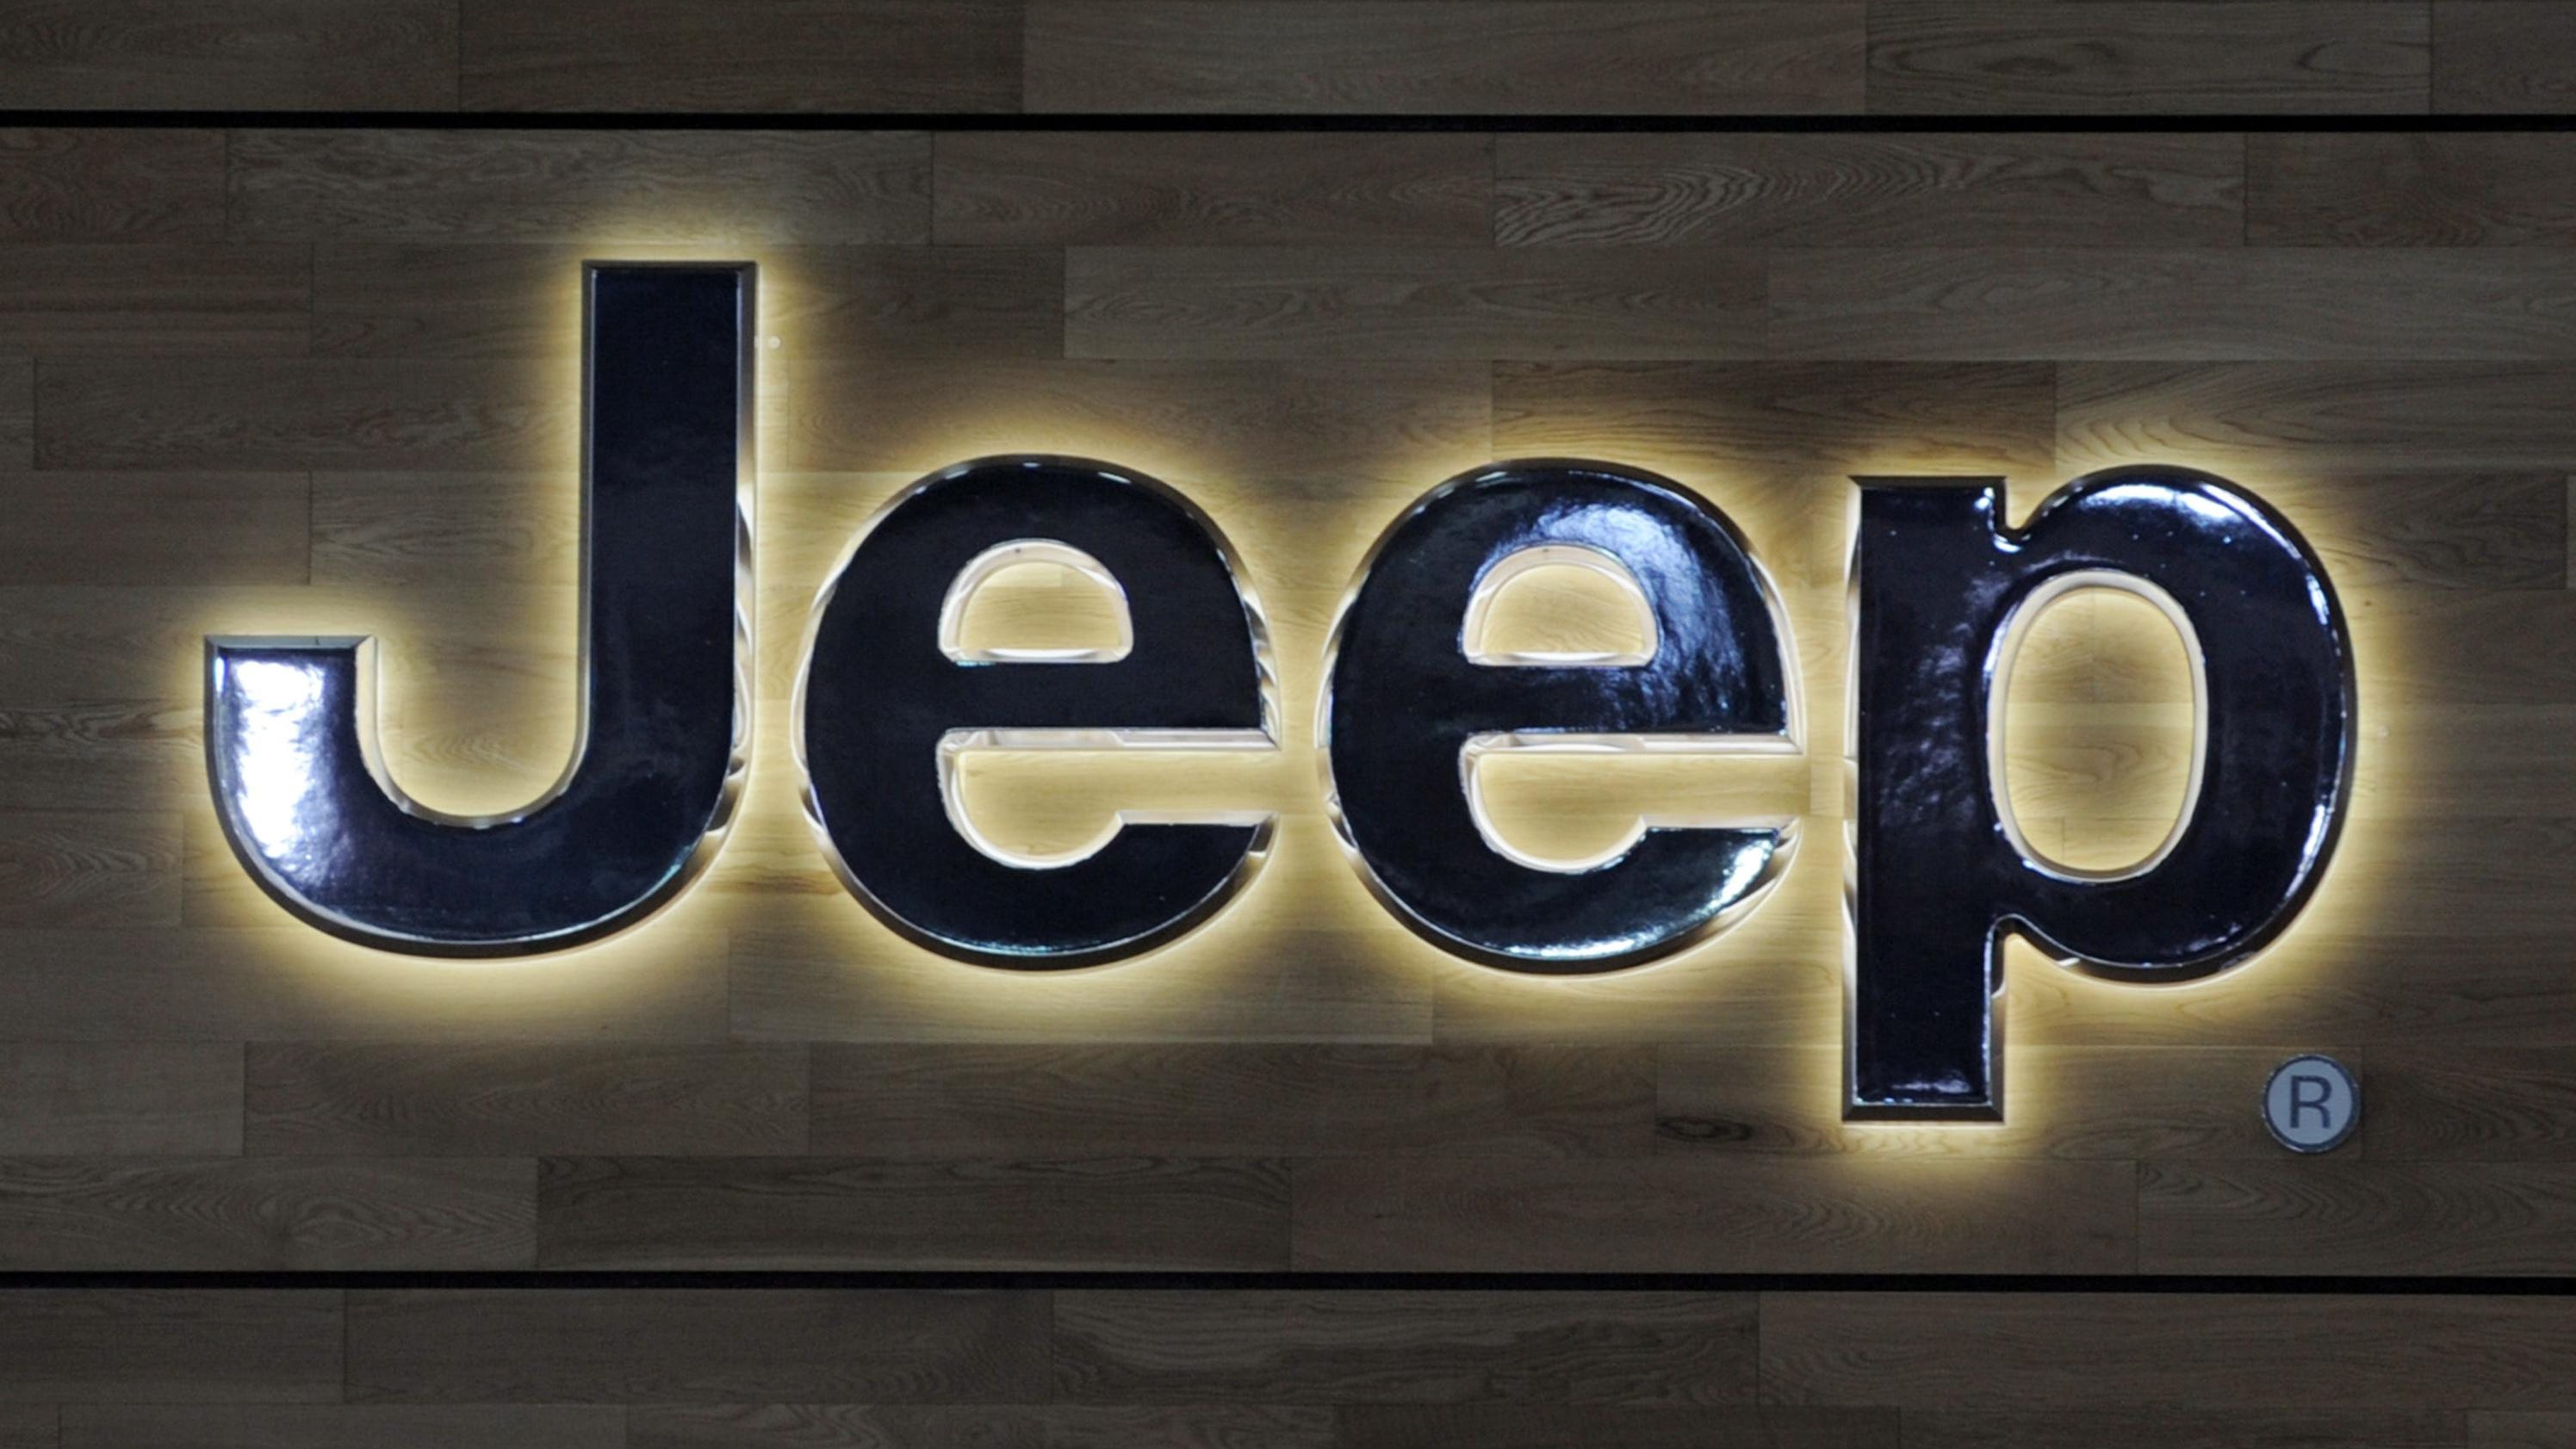 US probes air bag computer failures in '12 Jeep Liberty